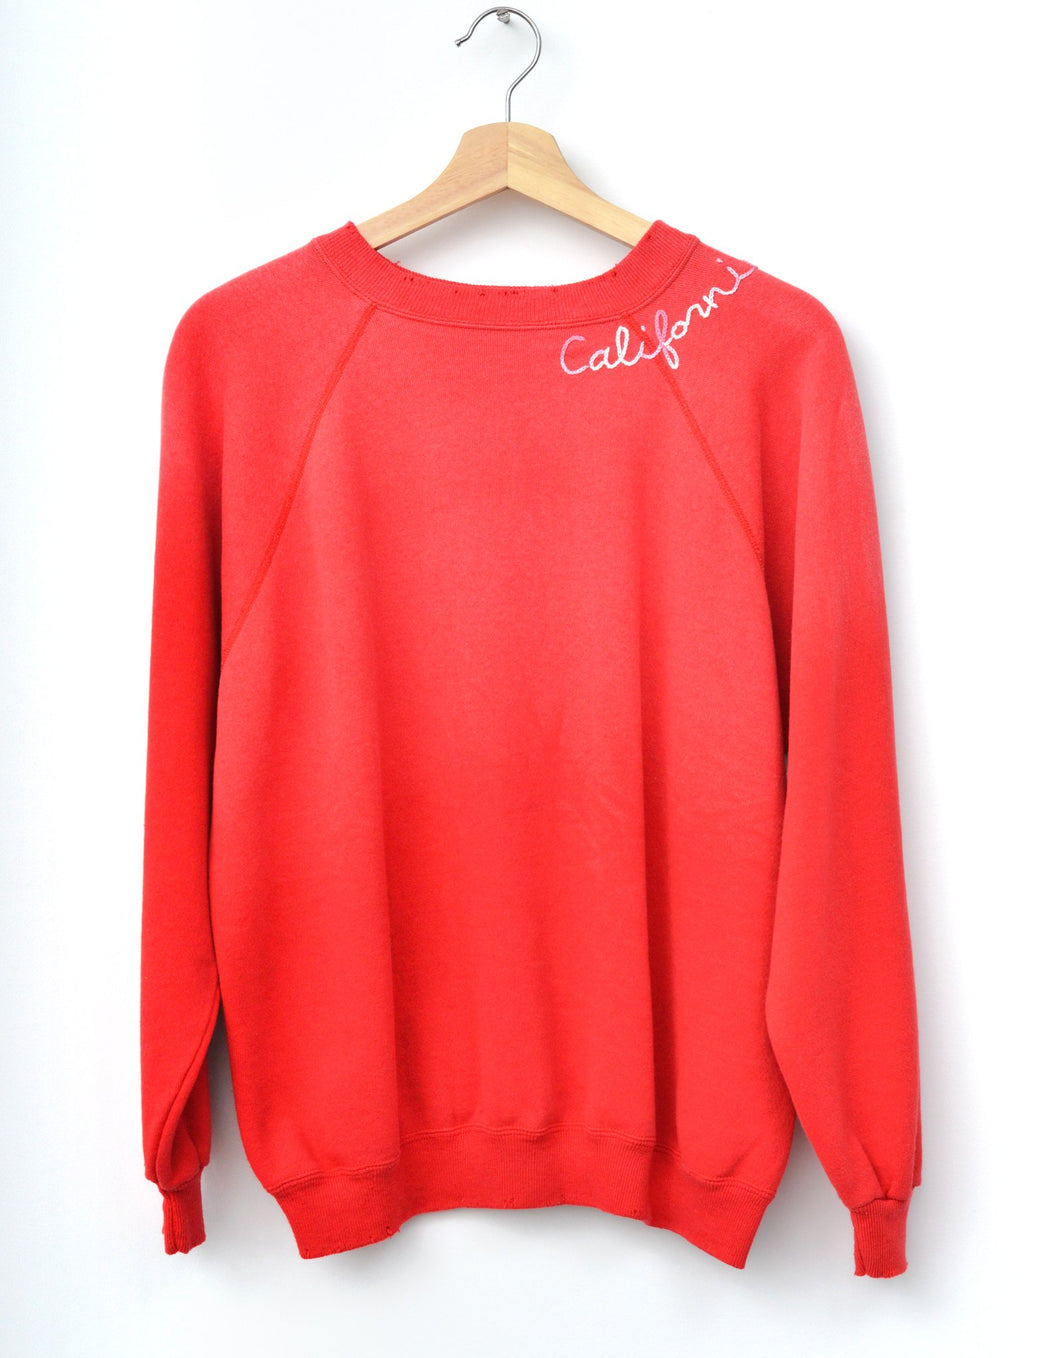 California Rainbow Sweatshirt - Red